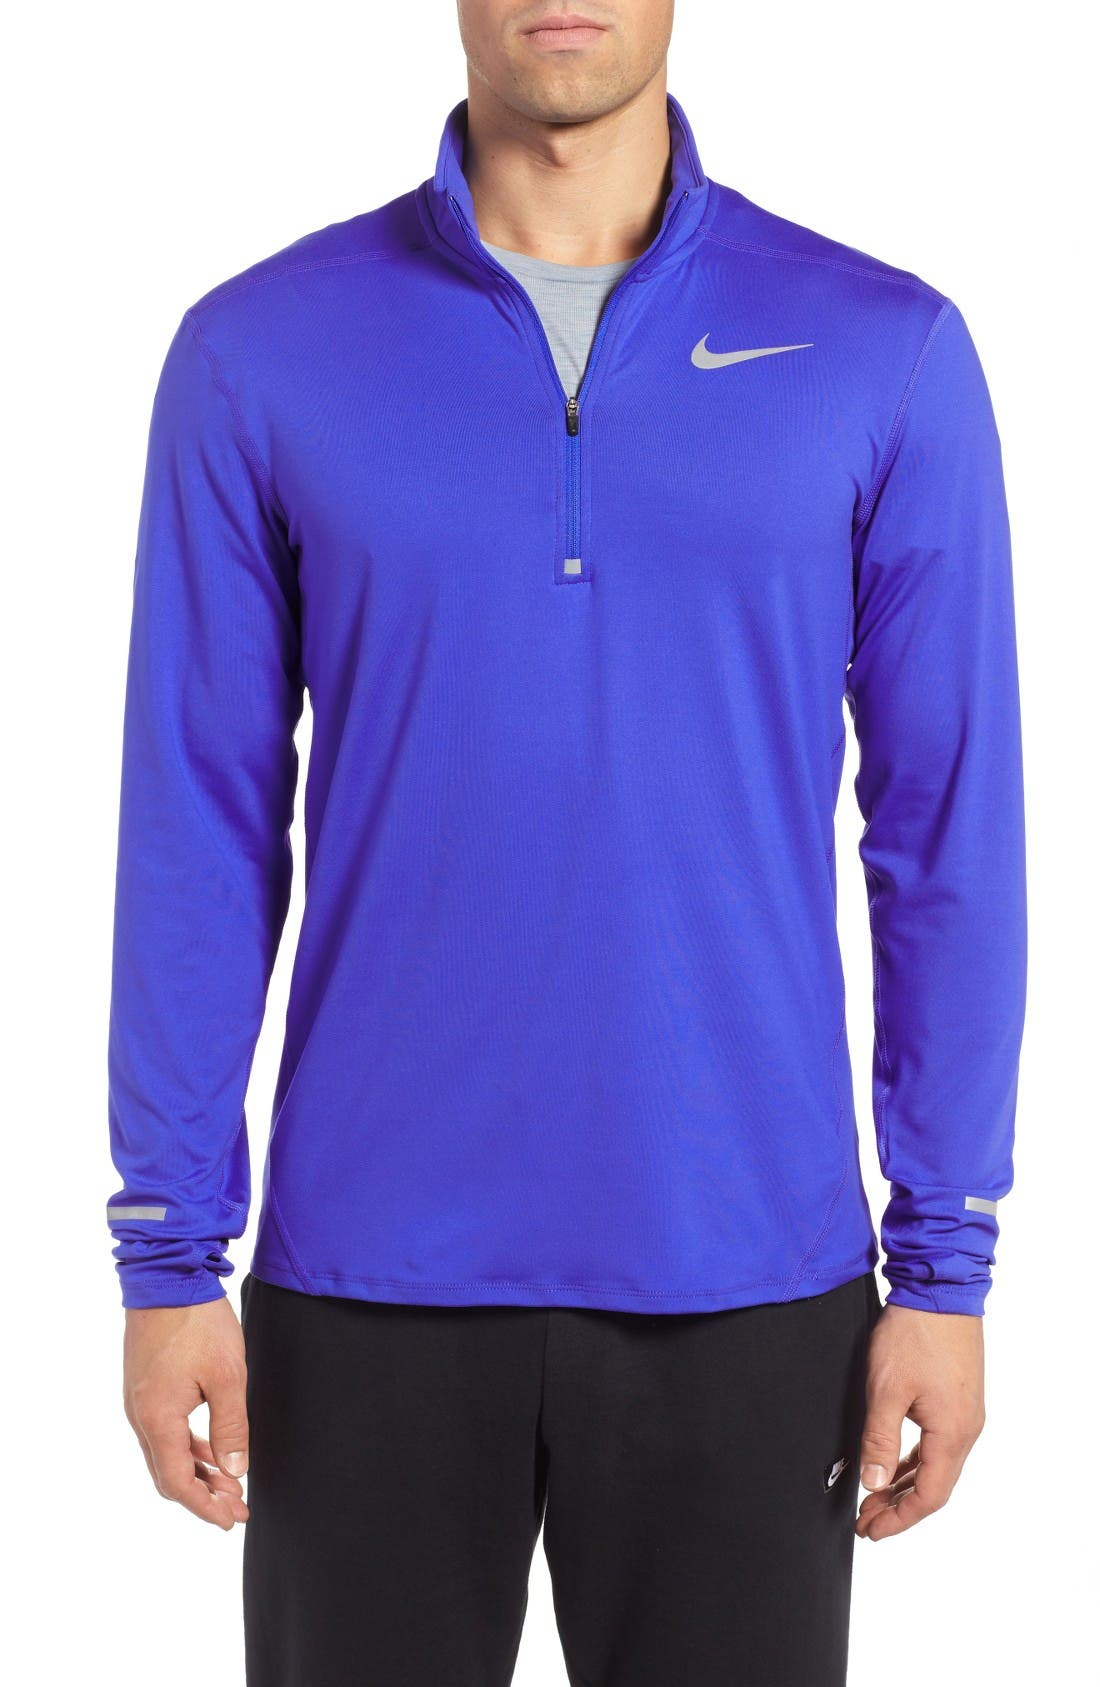 Nike 'Element' Dri-FIT Quarter Zip Running Top